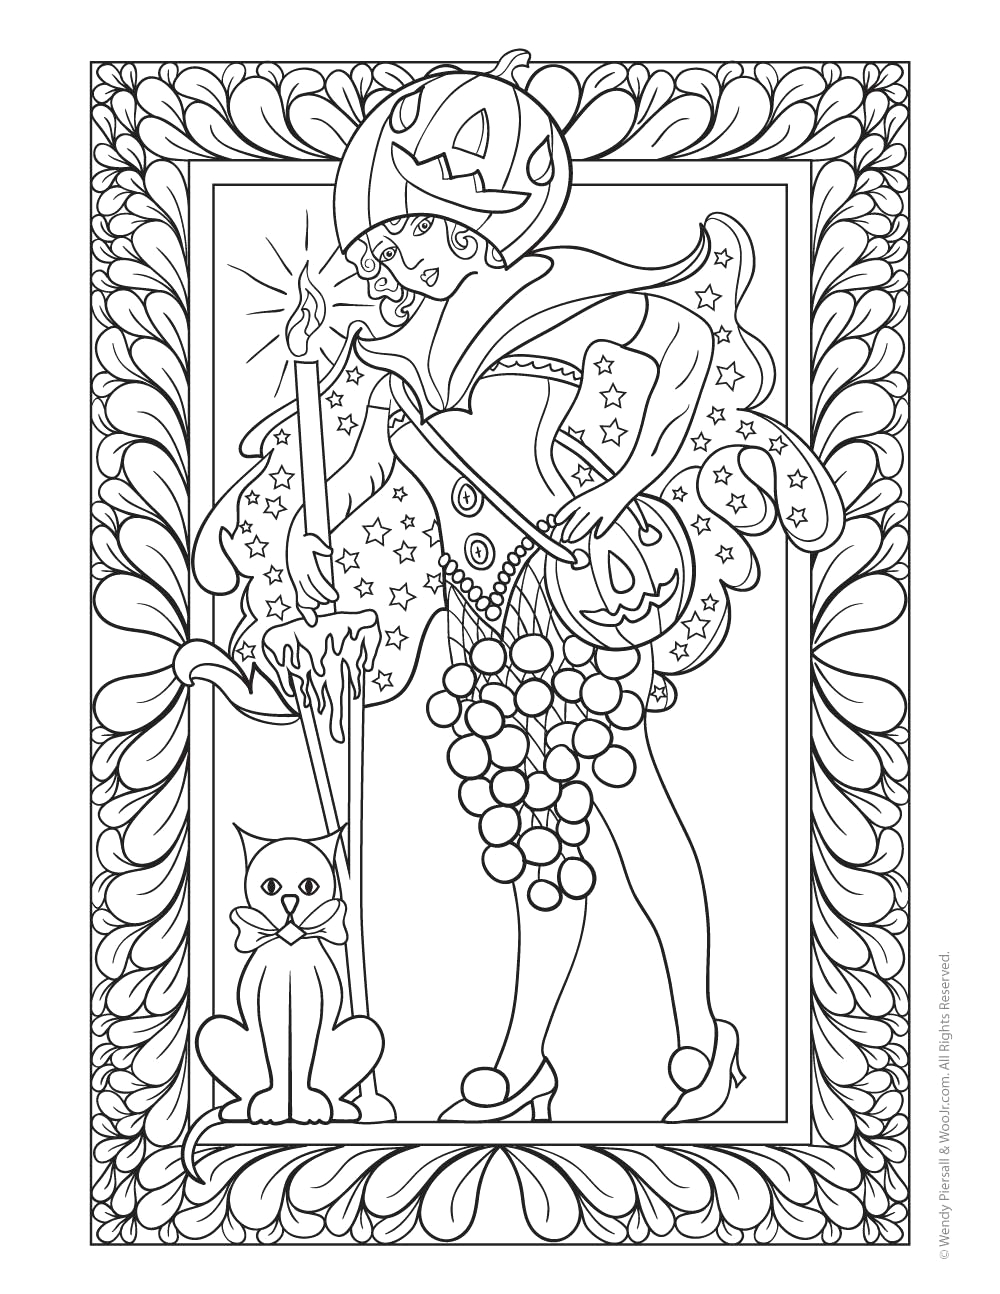 Free Printable Halloween Coloring Pages for Adults Only Halloween Pixie Fairy Coloring Page